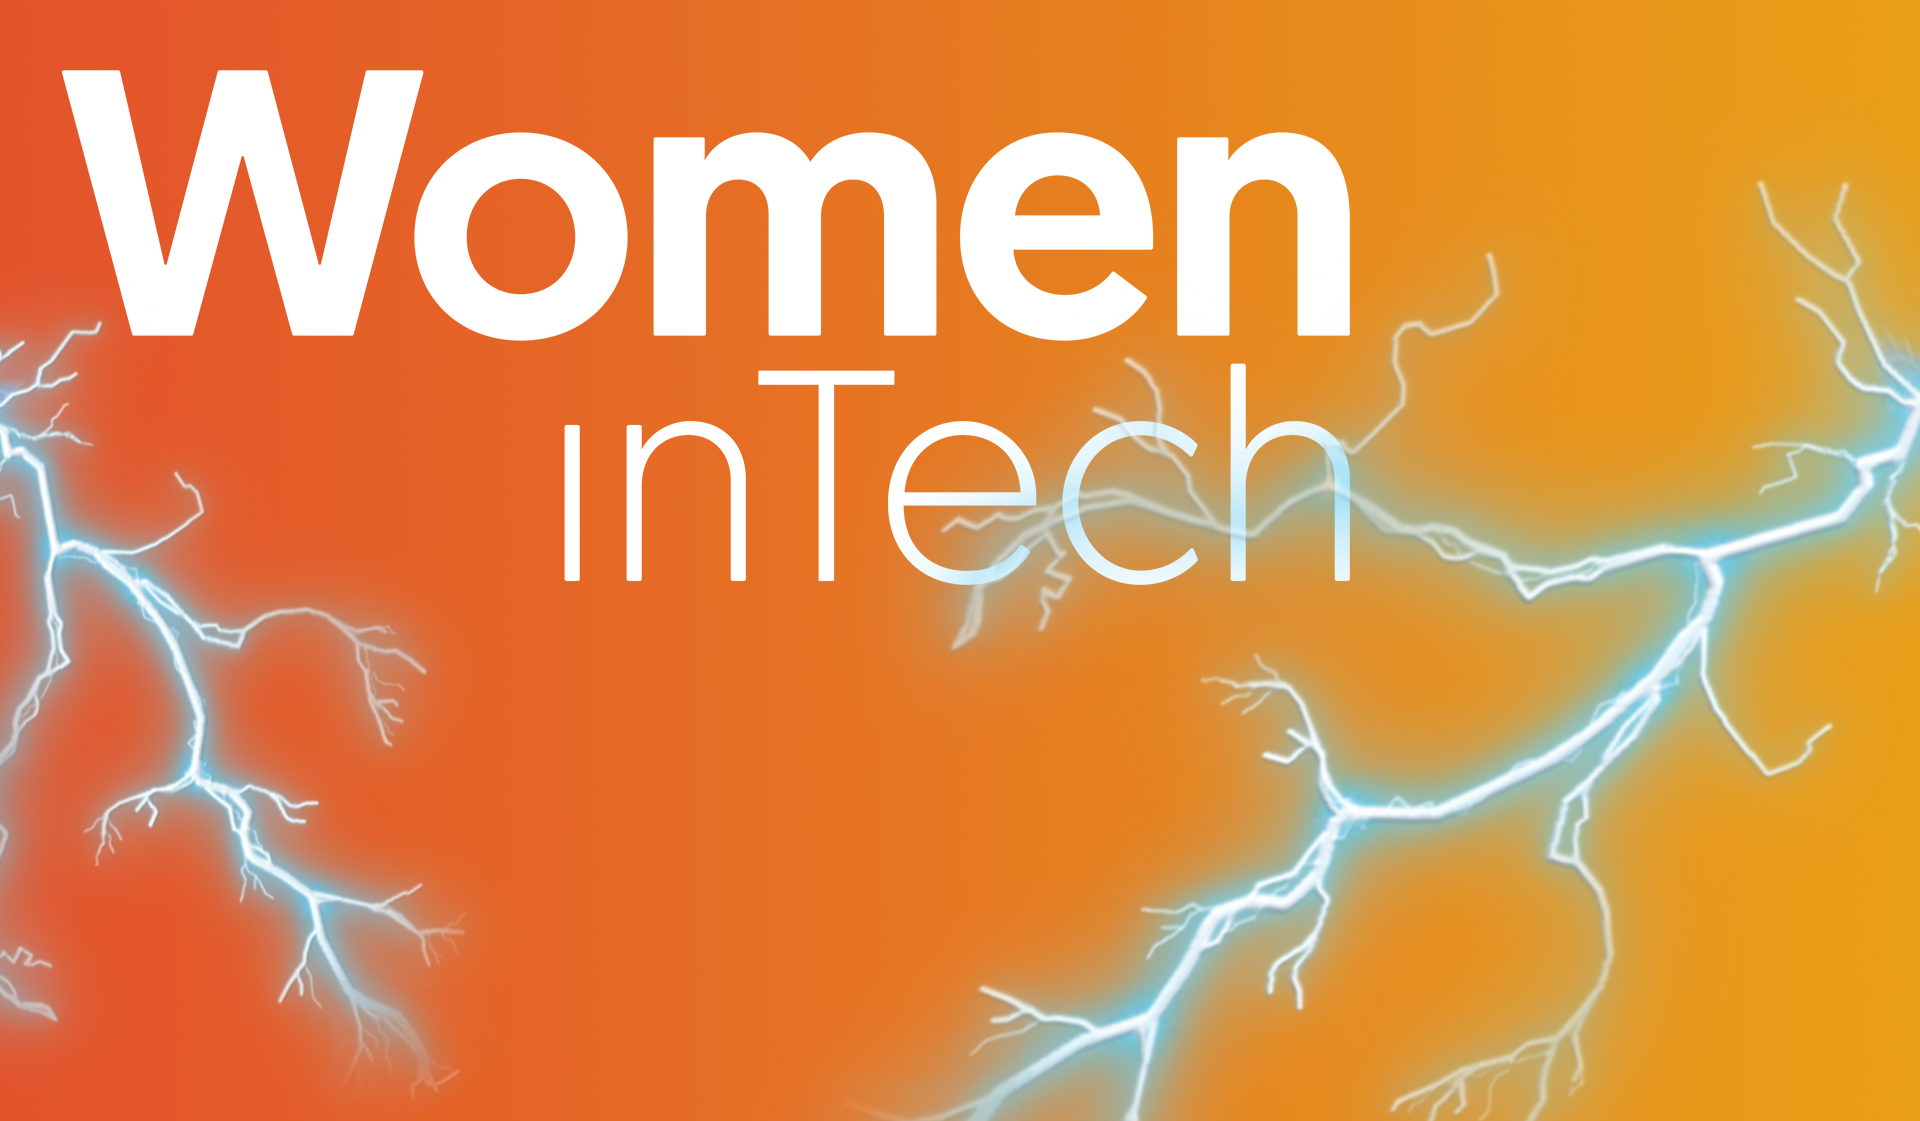 Women in Tech logo on an orange gradient background, with lightning strikes superimposed